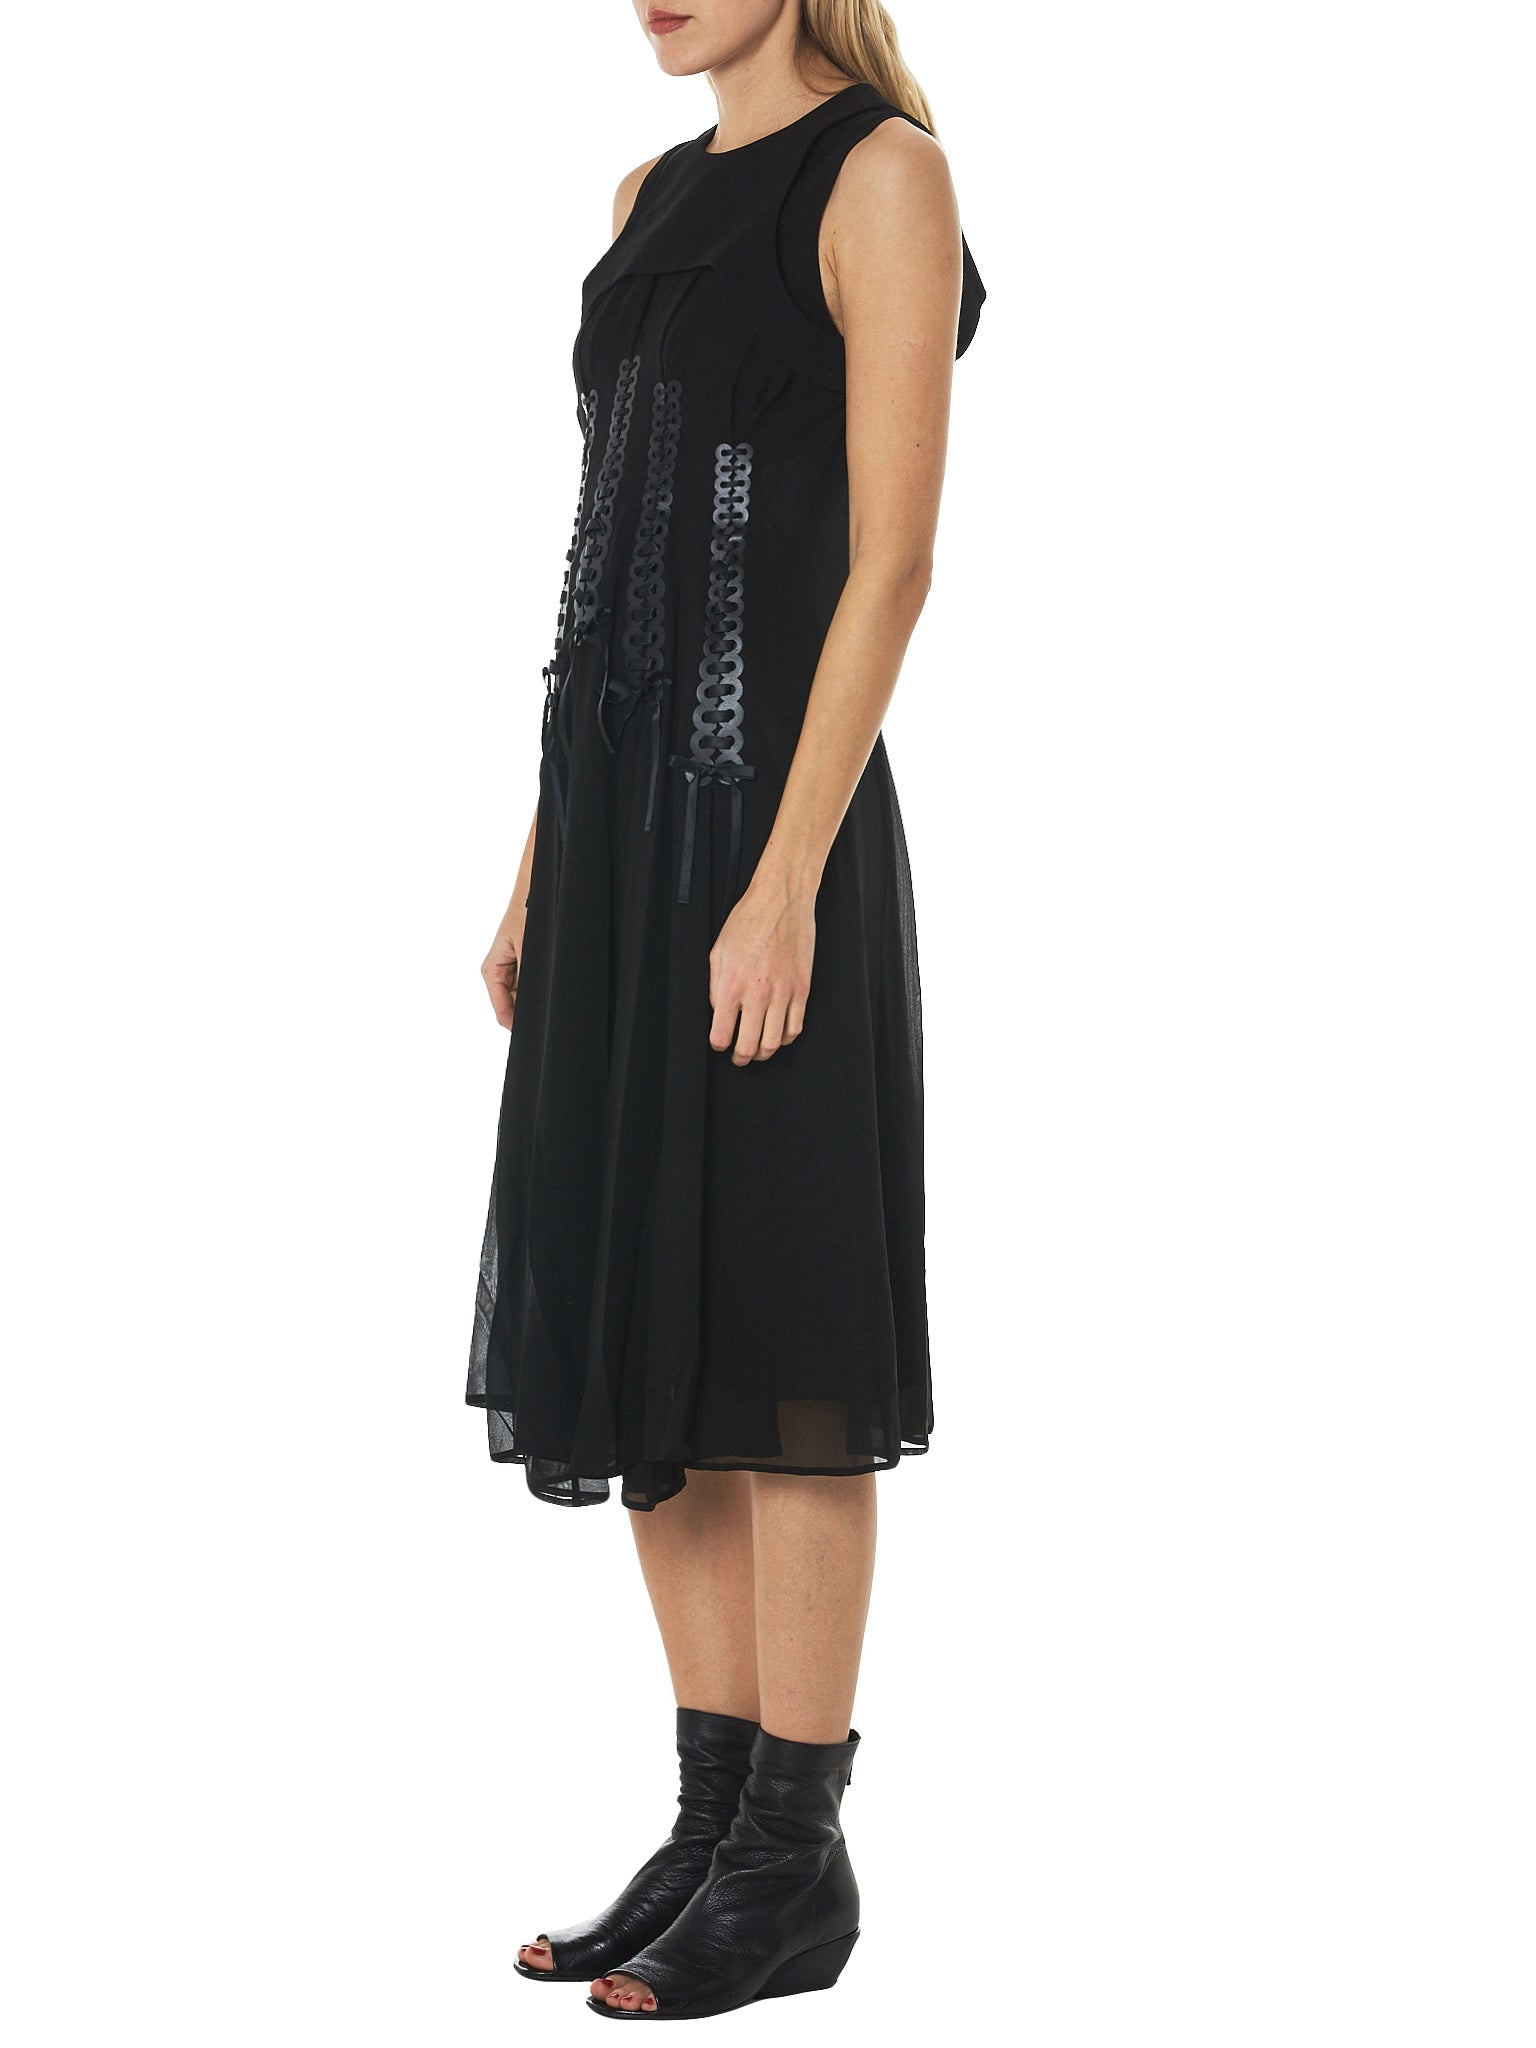 Noir by Kei Ninomiya Sleeveless Dress - Hlorenzo Side